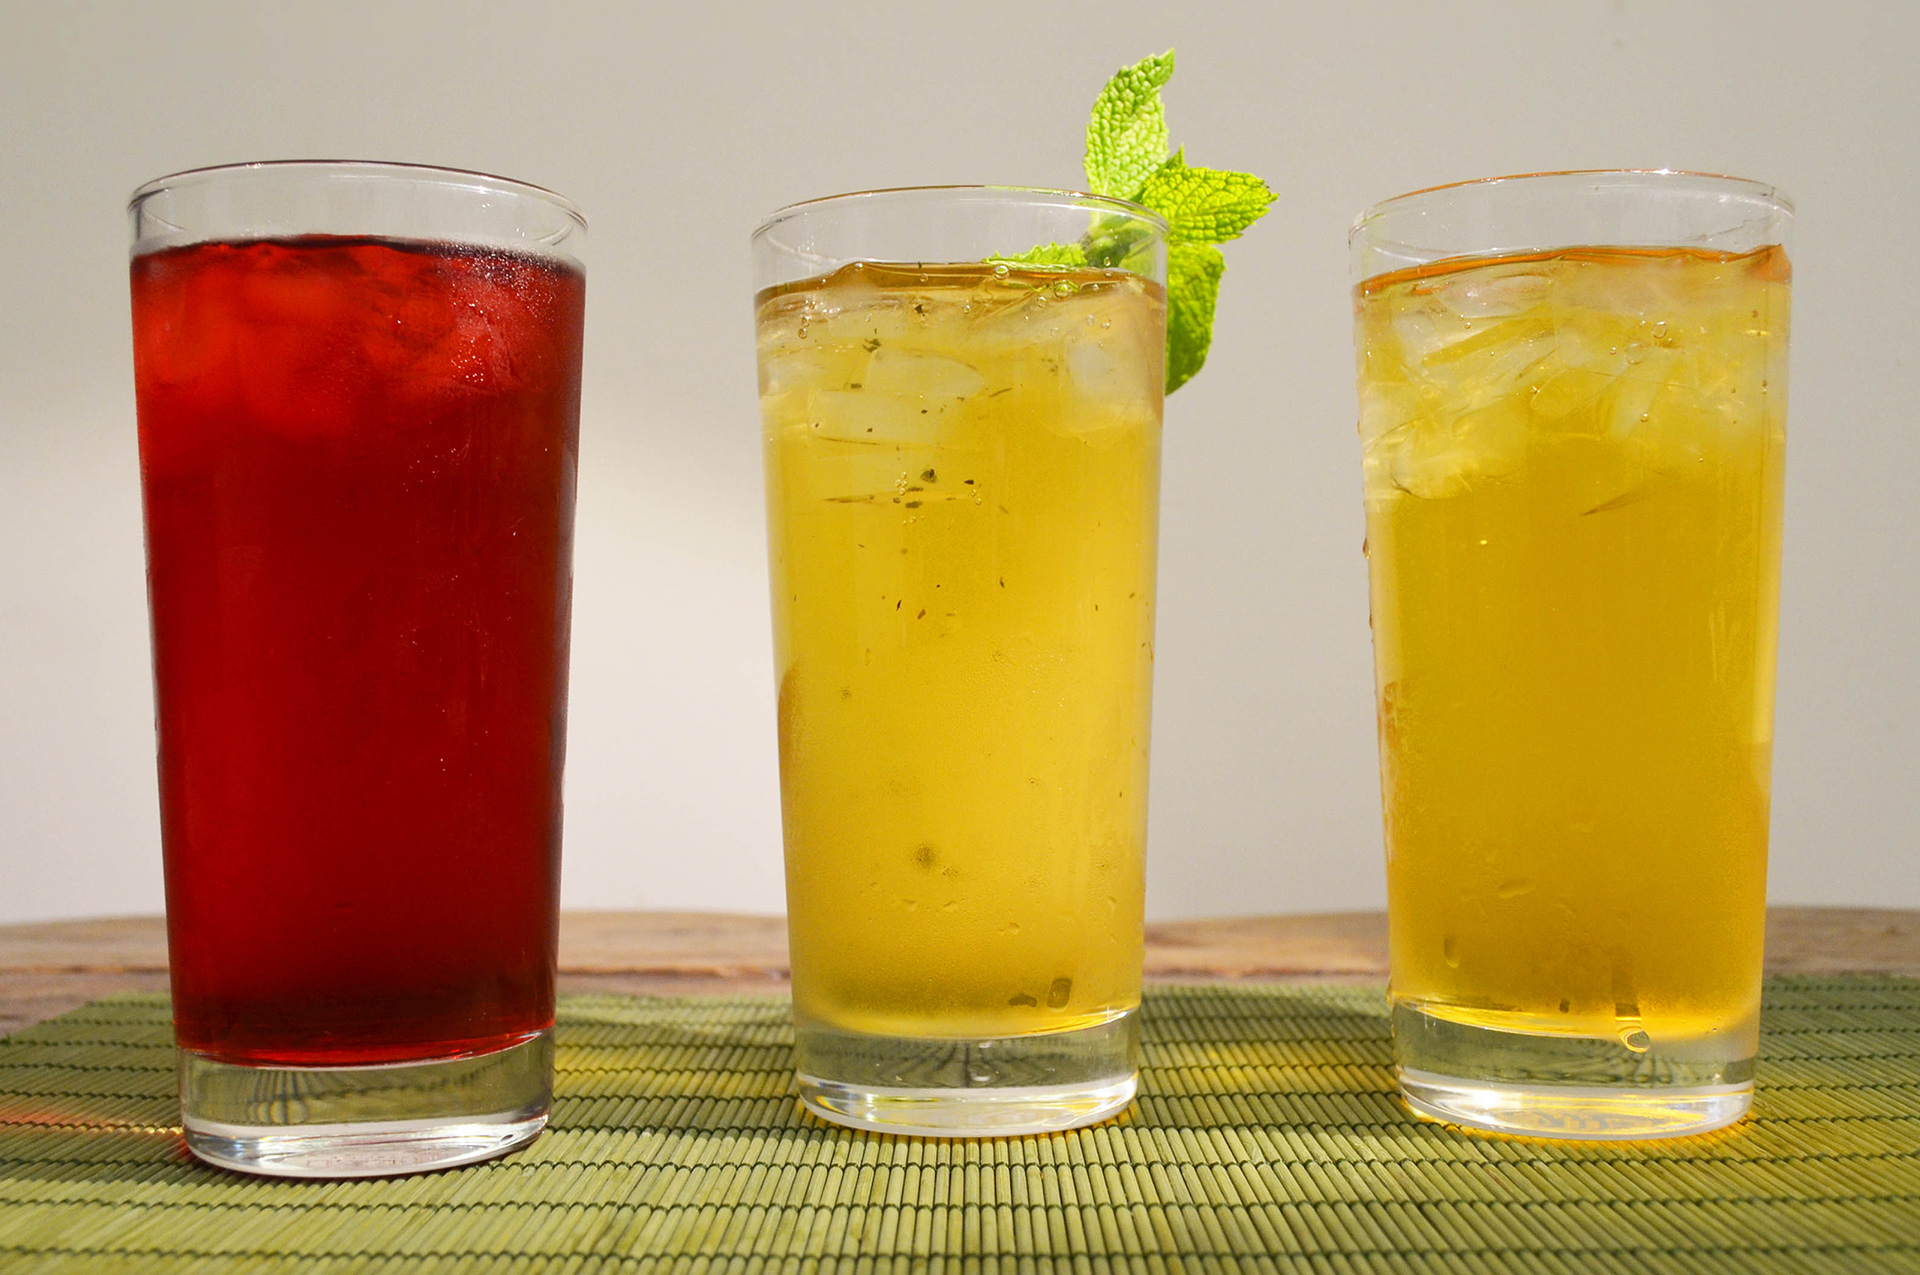 COLD-BREWED ICED TEAS FOR THE SUMMER MONTHS